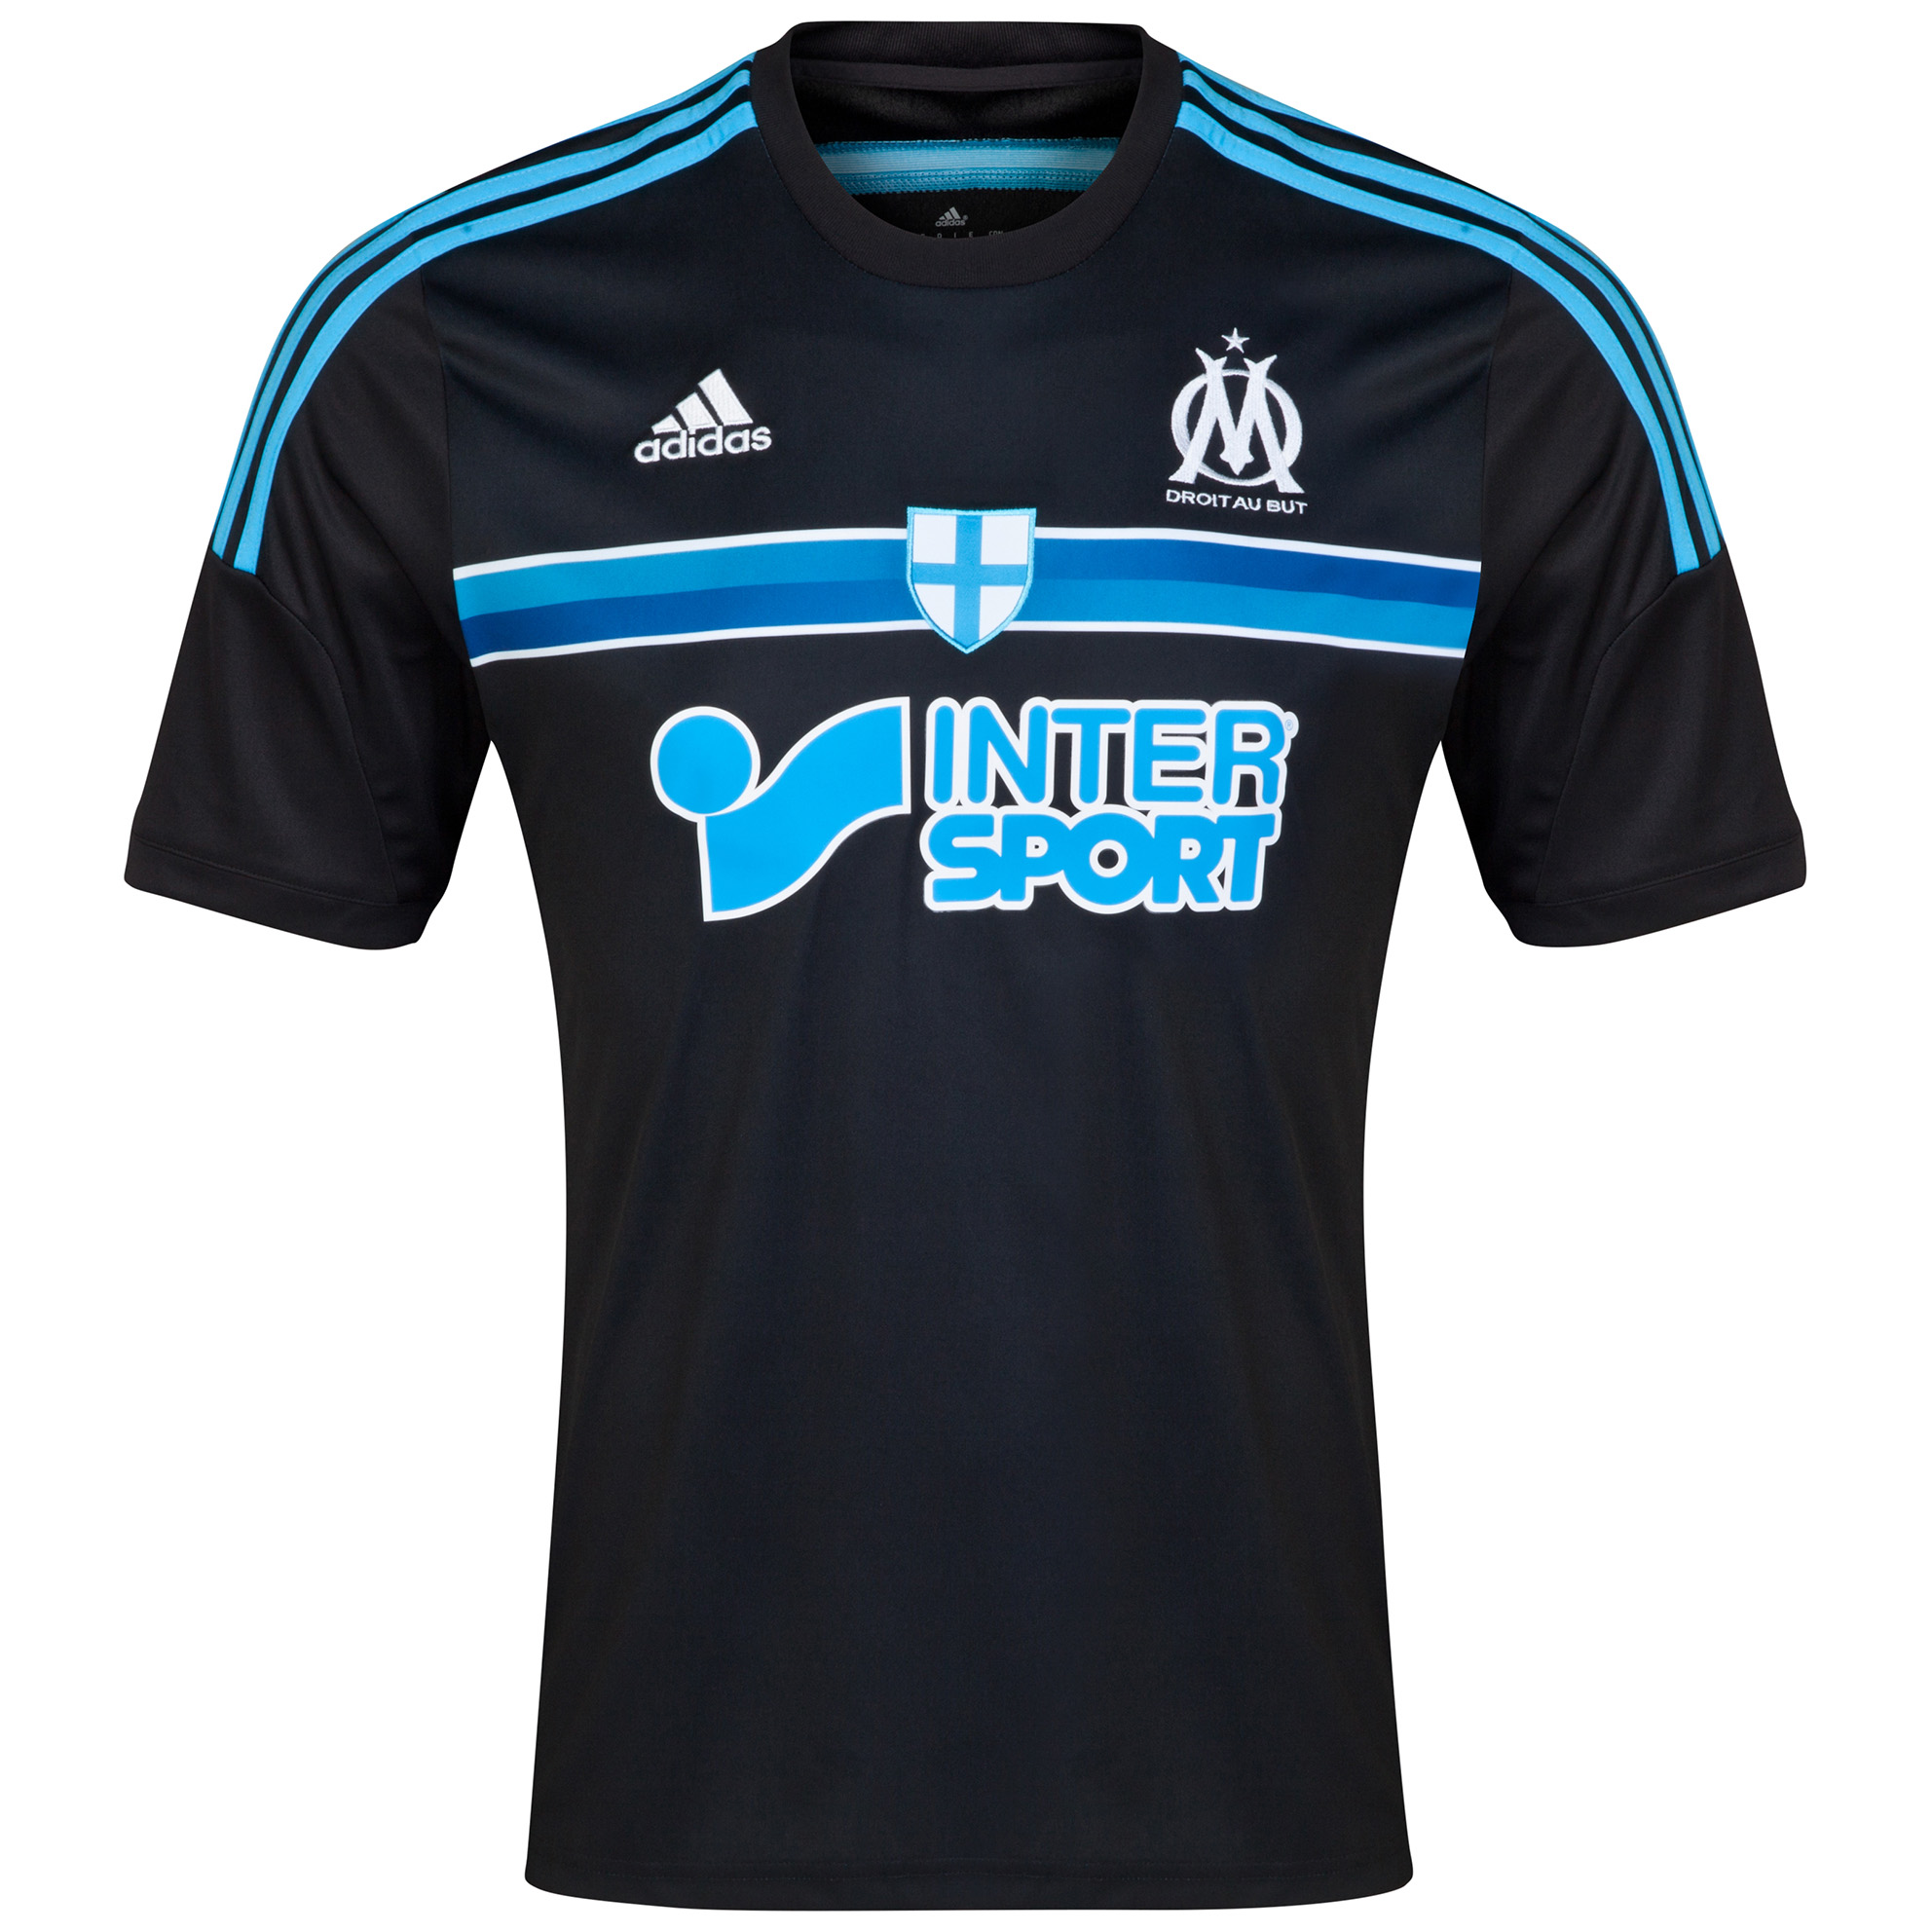 Olympique de Marseille 3rd Shirt Short Sleeve 2014/15 Black